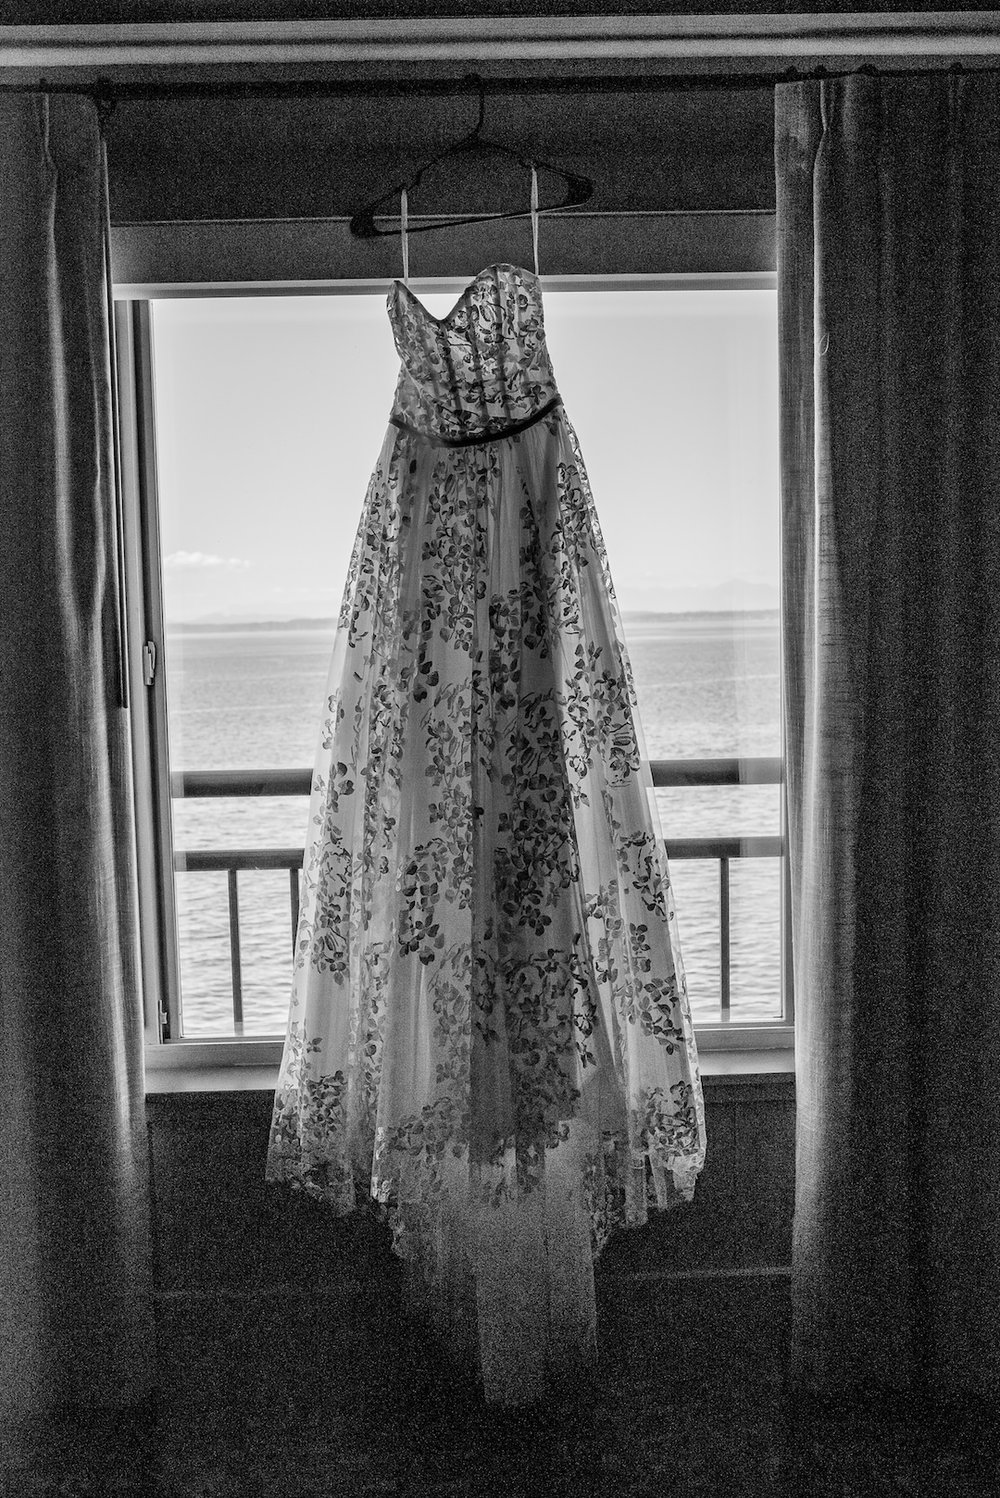 Lace dress hanging in the window with a waterfront view at Woodland Park Zoo Wedding photographed by Seattle Wedding Photographer Rebecca Ellison Photography. www.RebeccaEllison.com